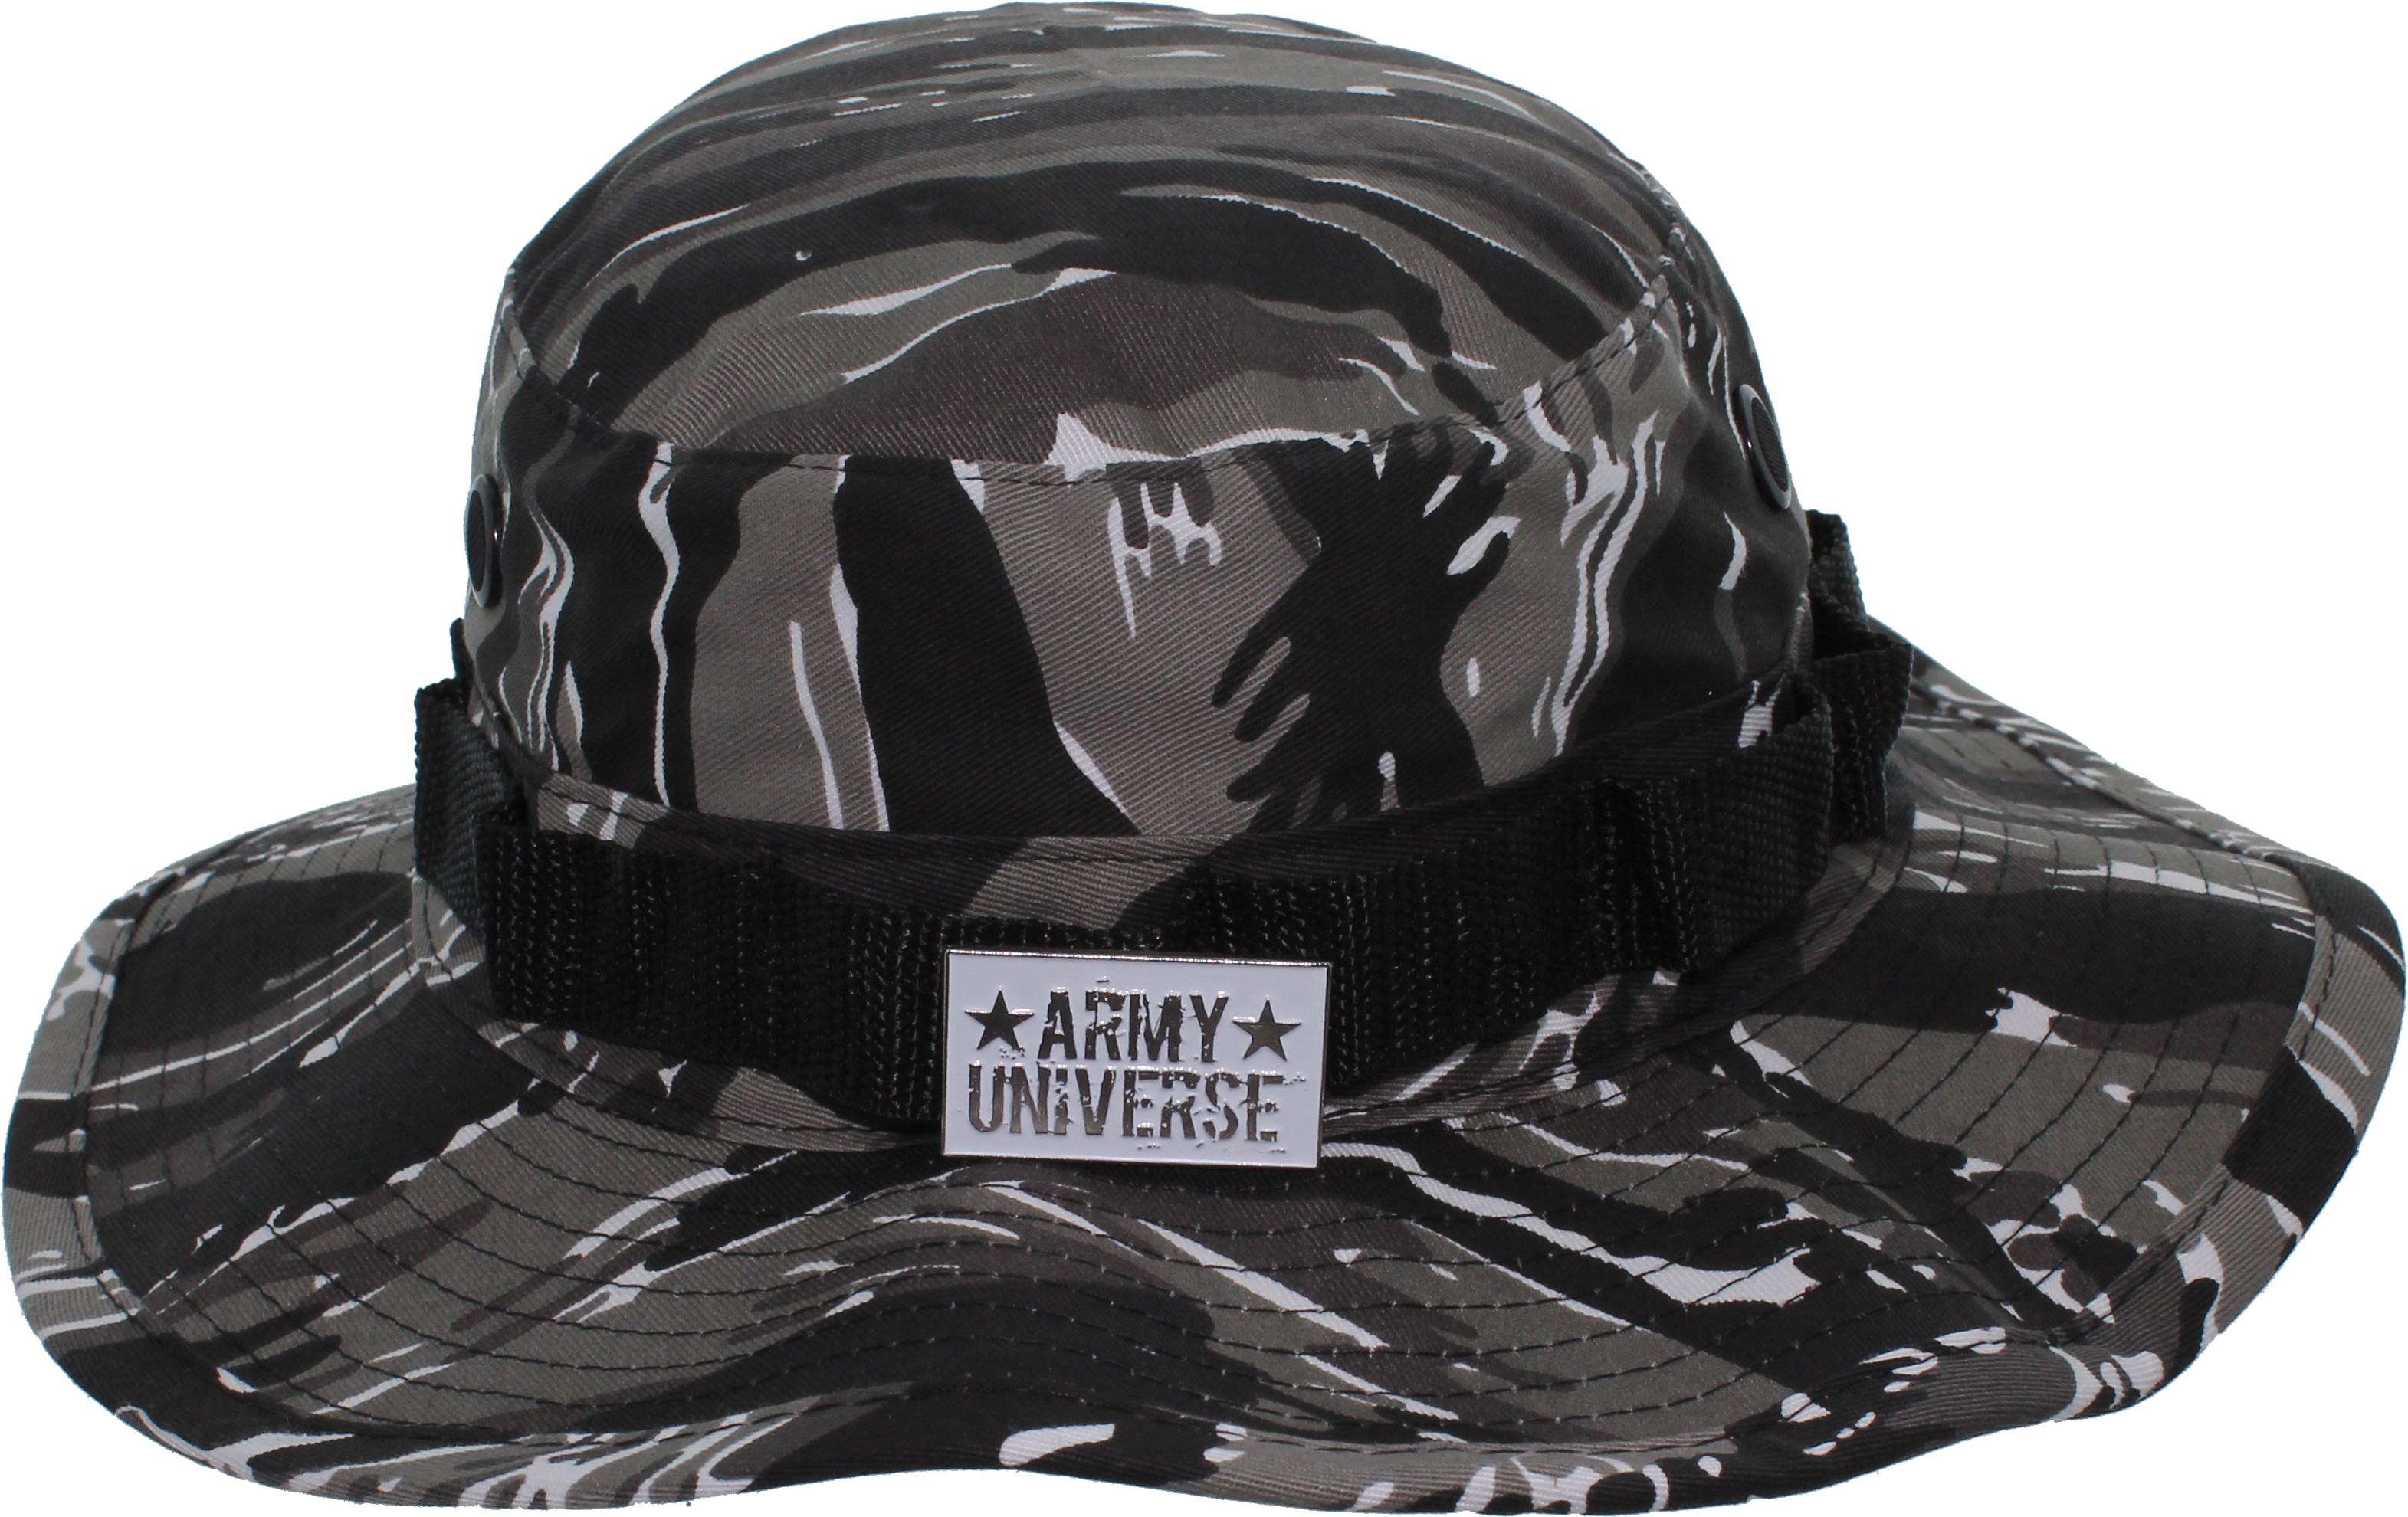 ... Urban Tiger Stripe Camouflage Boonie Hat with ARMY UNIVERSE Pin ... 03f499badd2